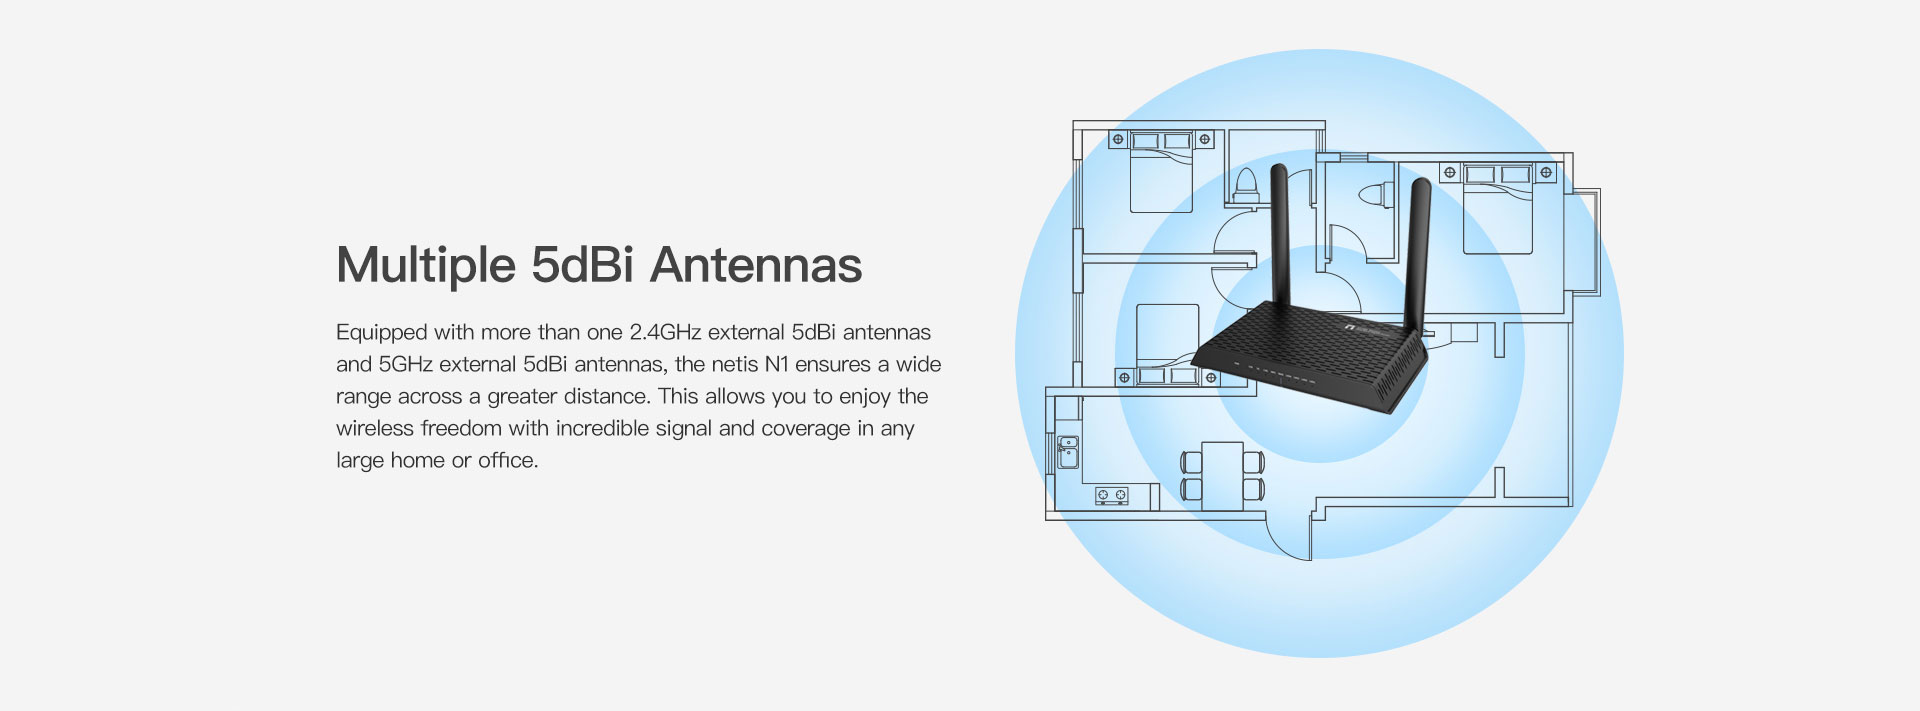 N1 Wireless N Home Router Diagram Works Seamlessly With All 80211a B G Ac Devices Simultaneous 24ghz 300mbps And 5ghz 867mbps Connections Various Wan Connection Types In Ap